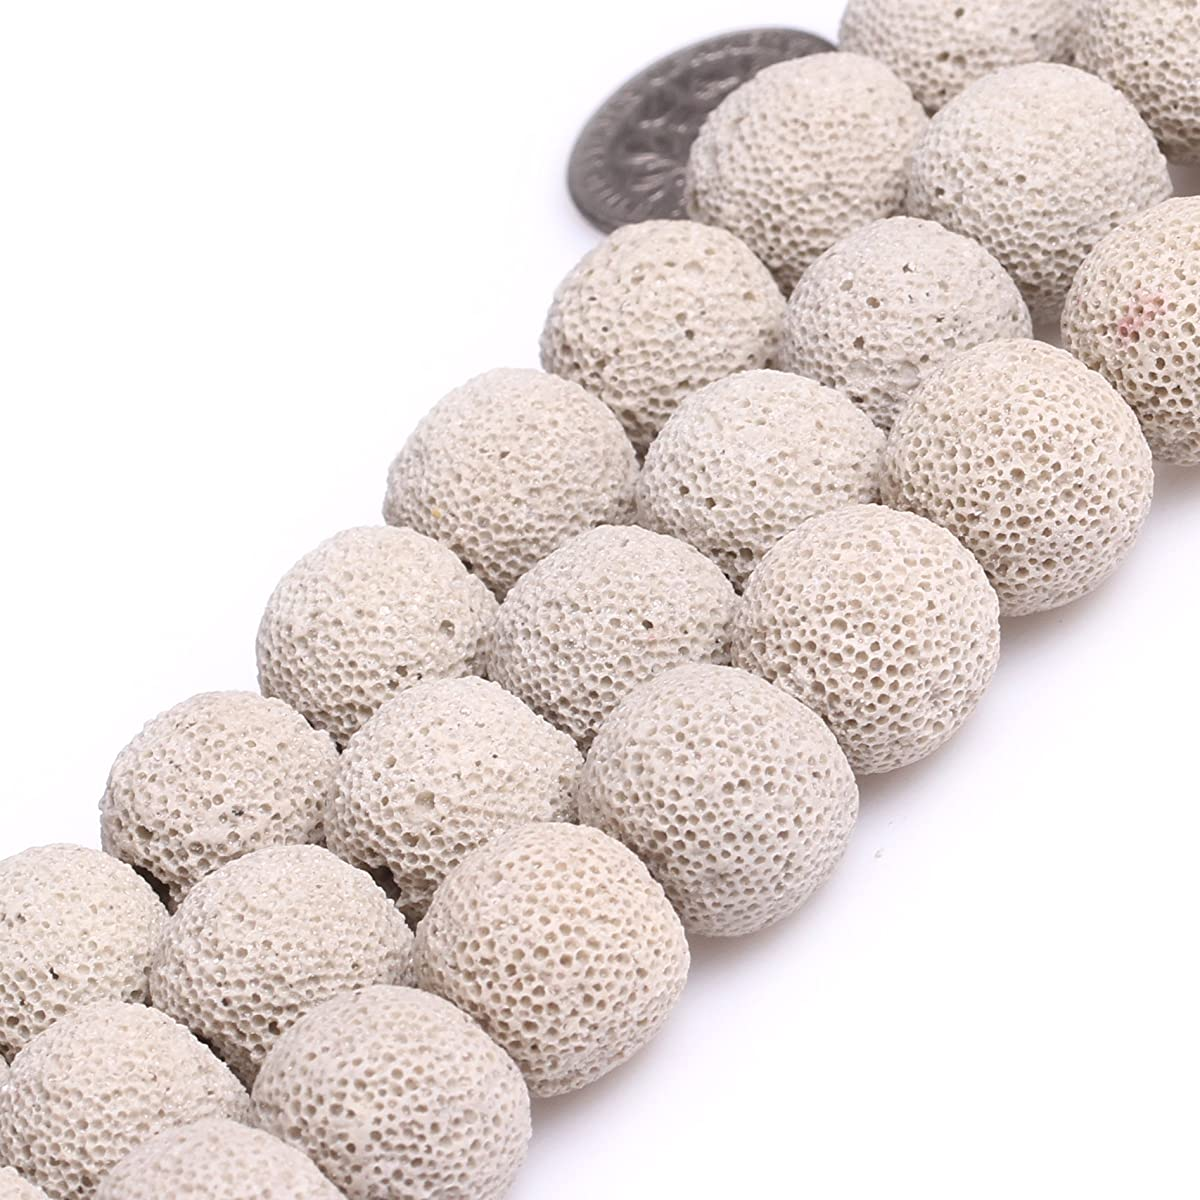 JOE FOREMAN 14mm Lava Rock Semi Precious Gemstone Round Cream White Loose Beads for Jewelry Making DIY Handmade Craft Supplies 15